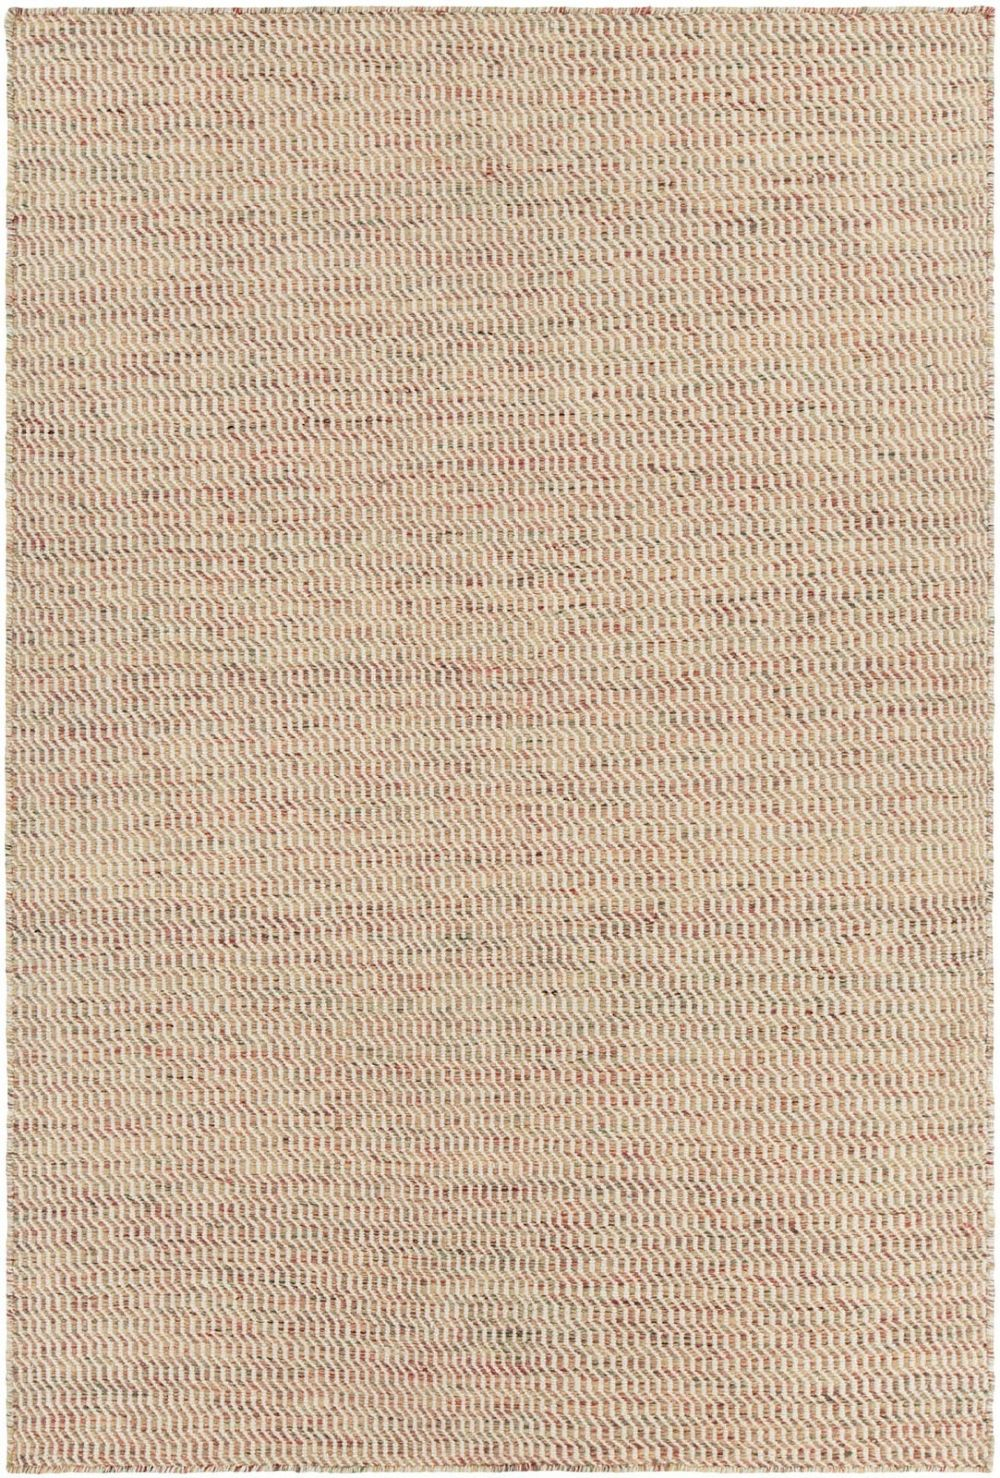 chandra crest solid/striped area rug collection